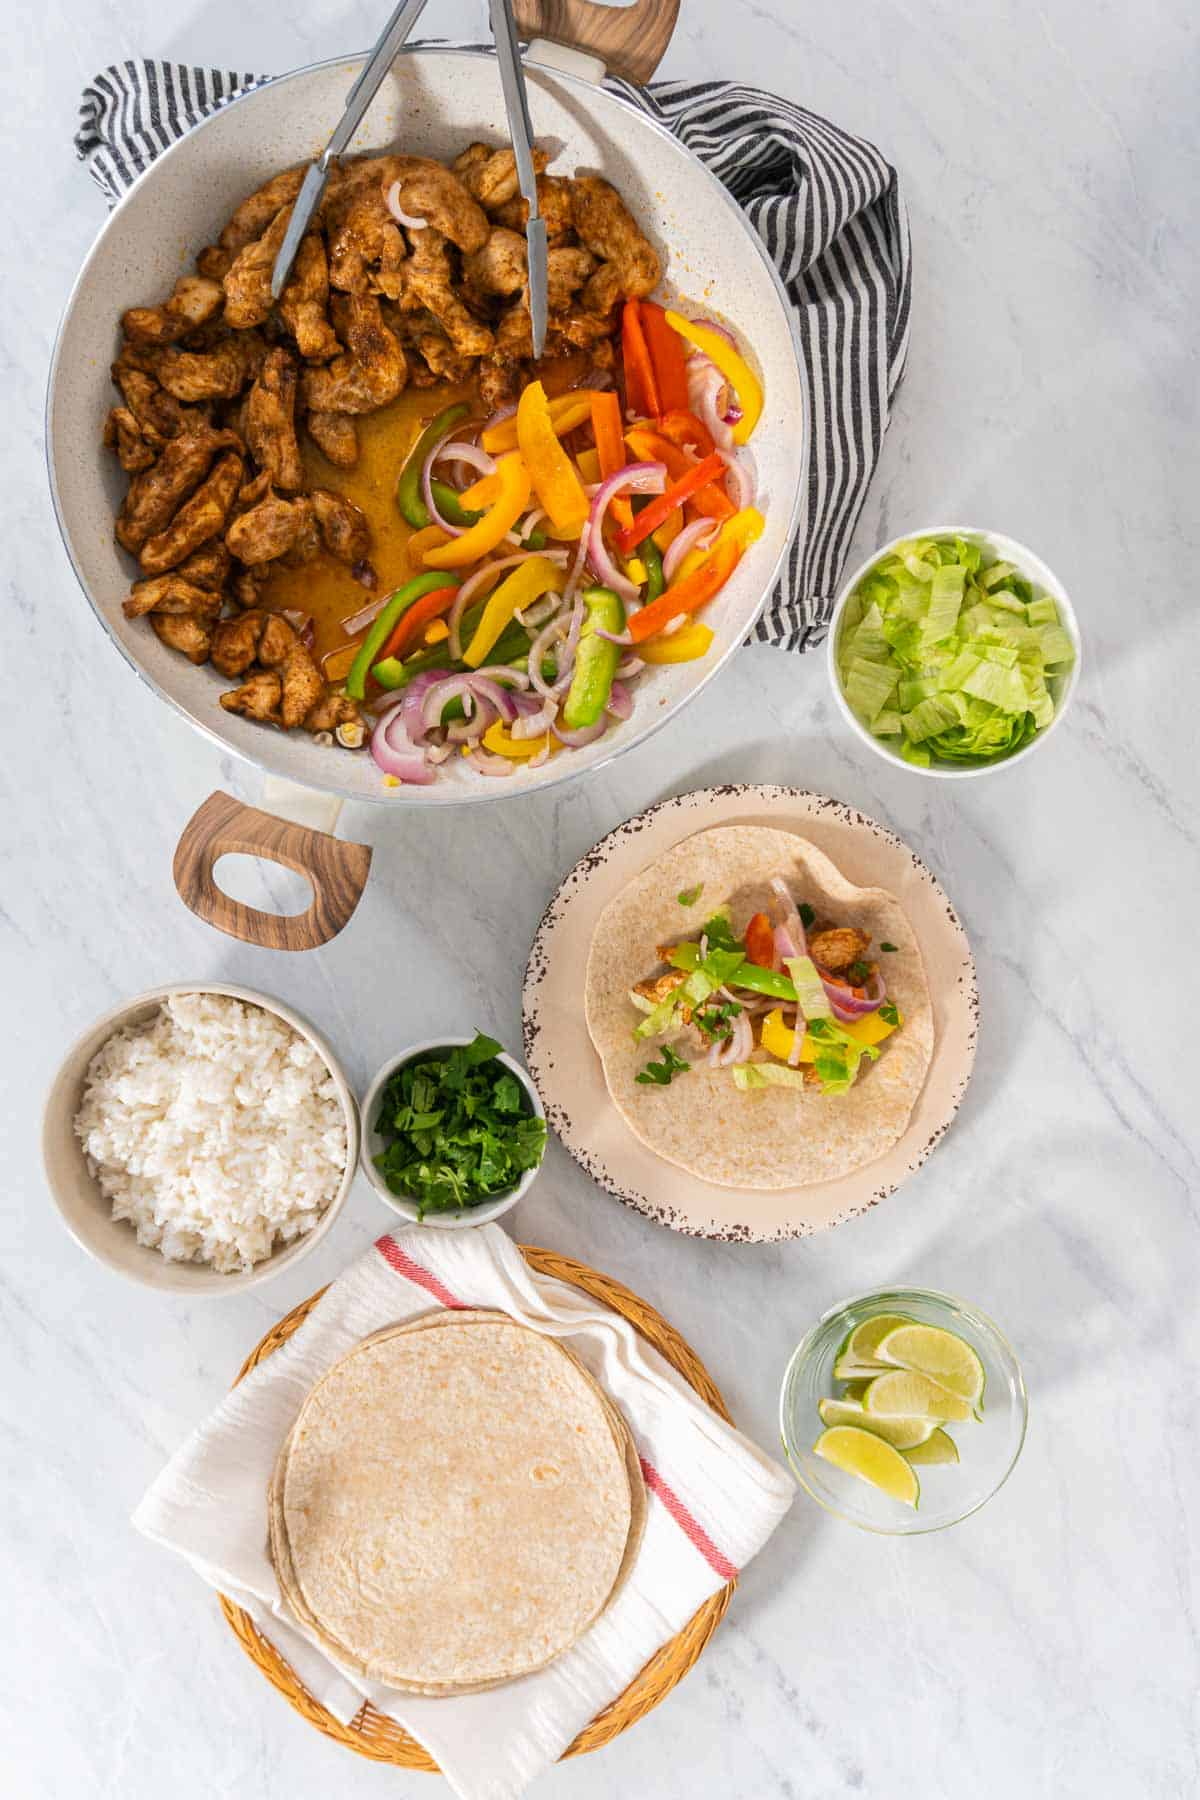 Assembling chicken fajita tacos with lettuce and limes.